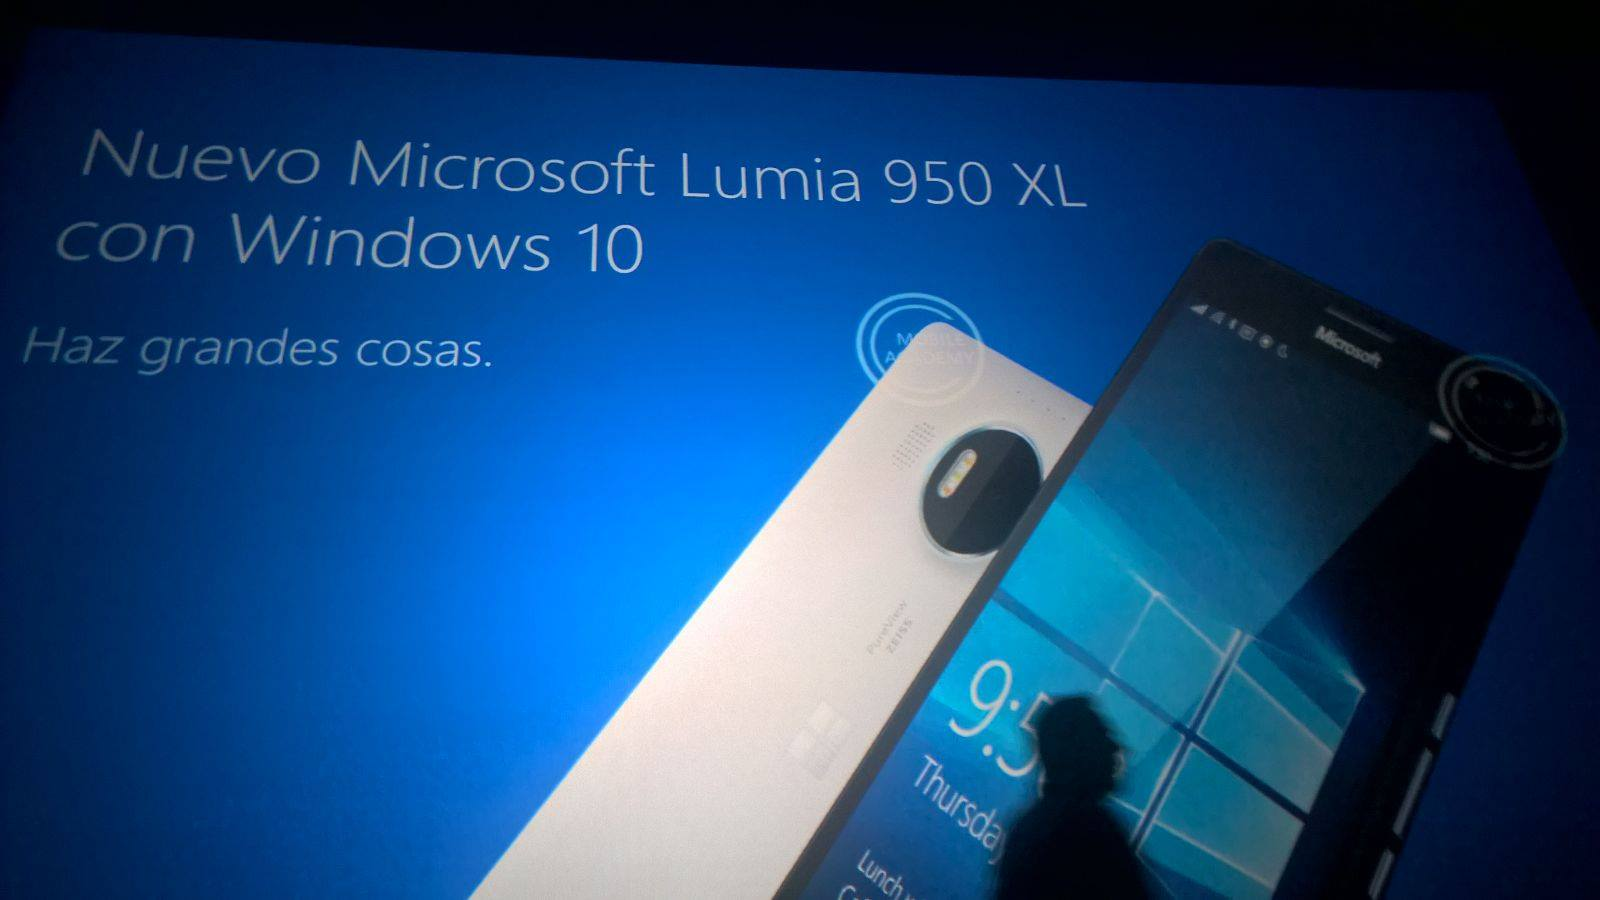 New pictures of the Lumia 950 XL and Lumia 950 leaked, confirms rumored specs 6